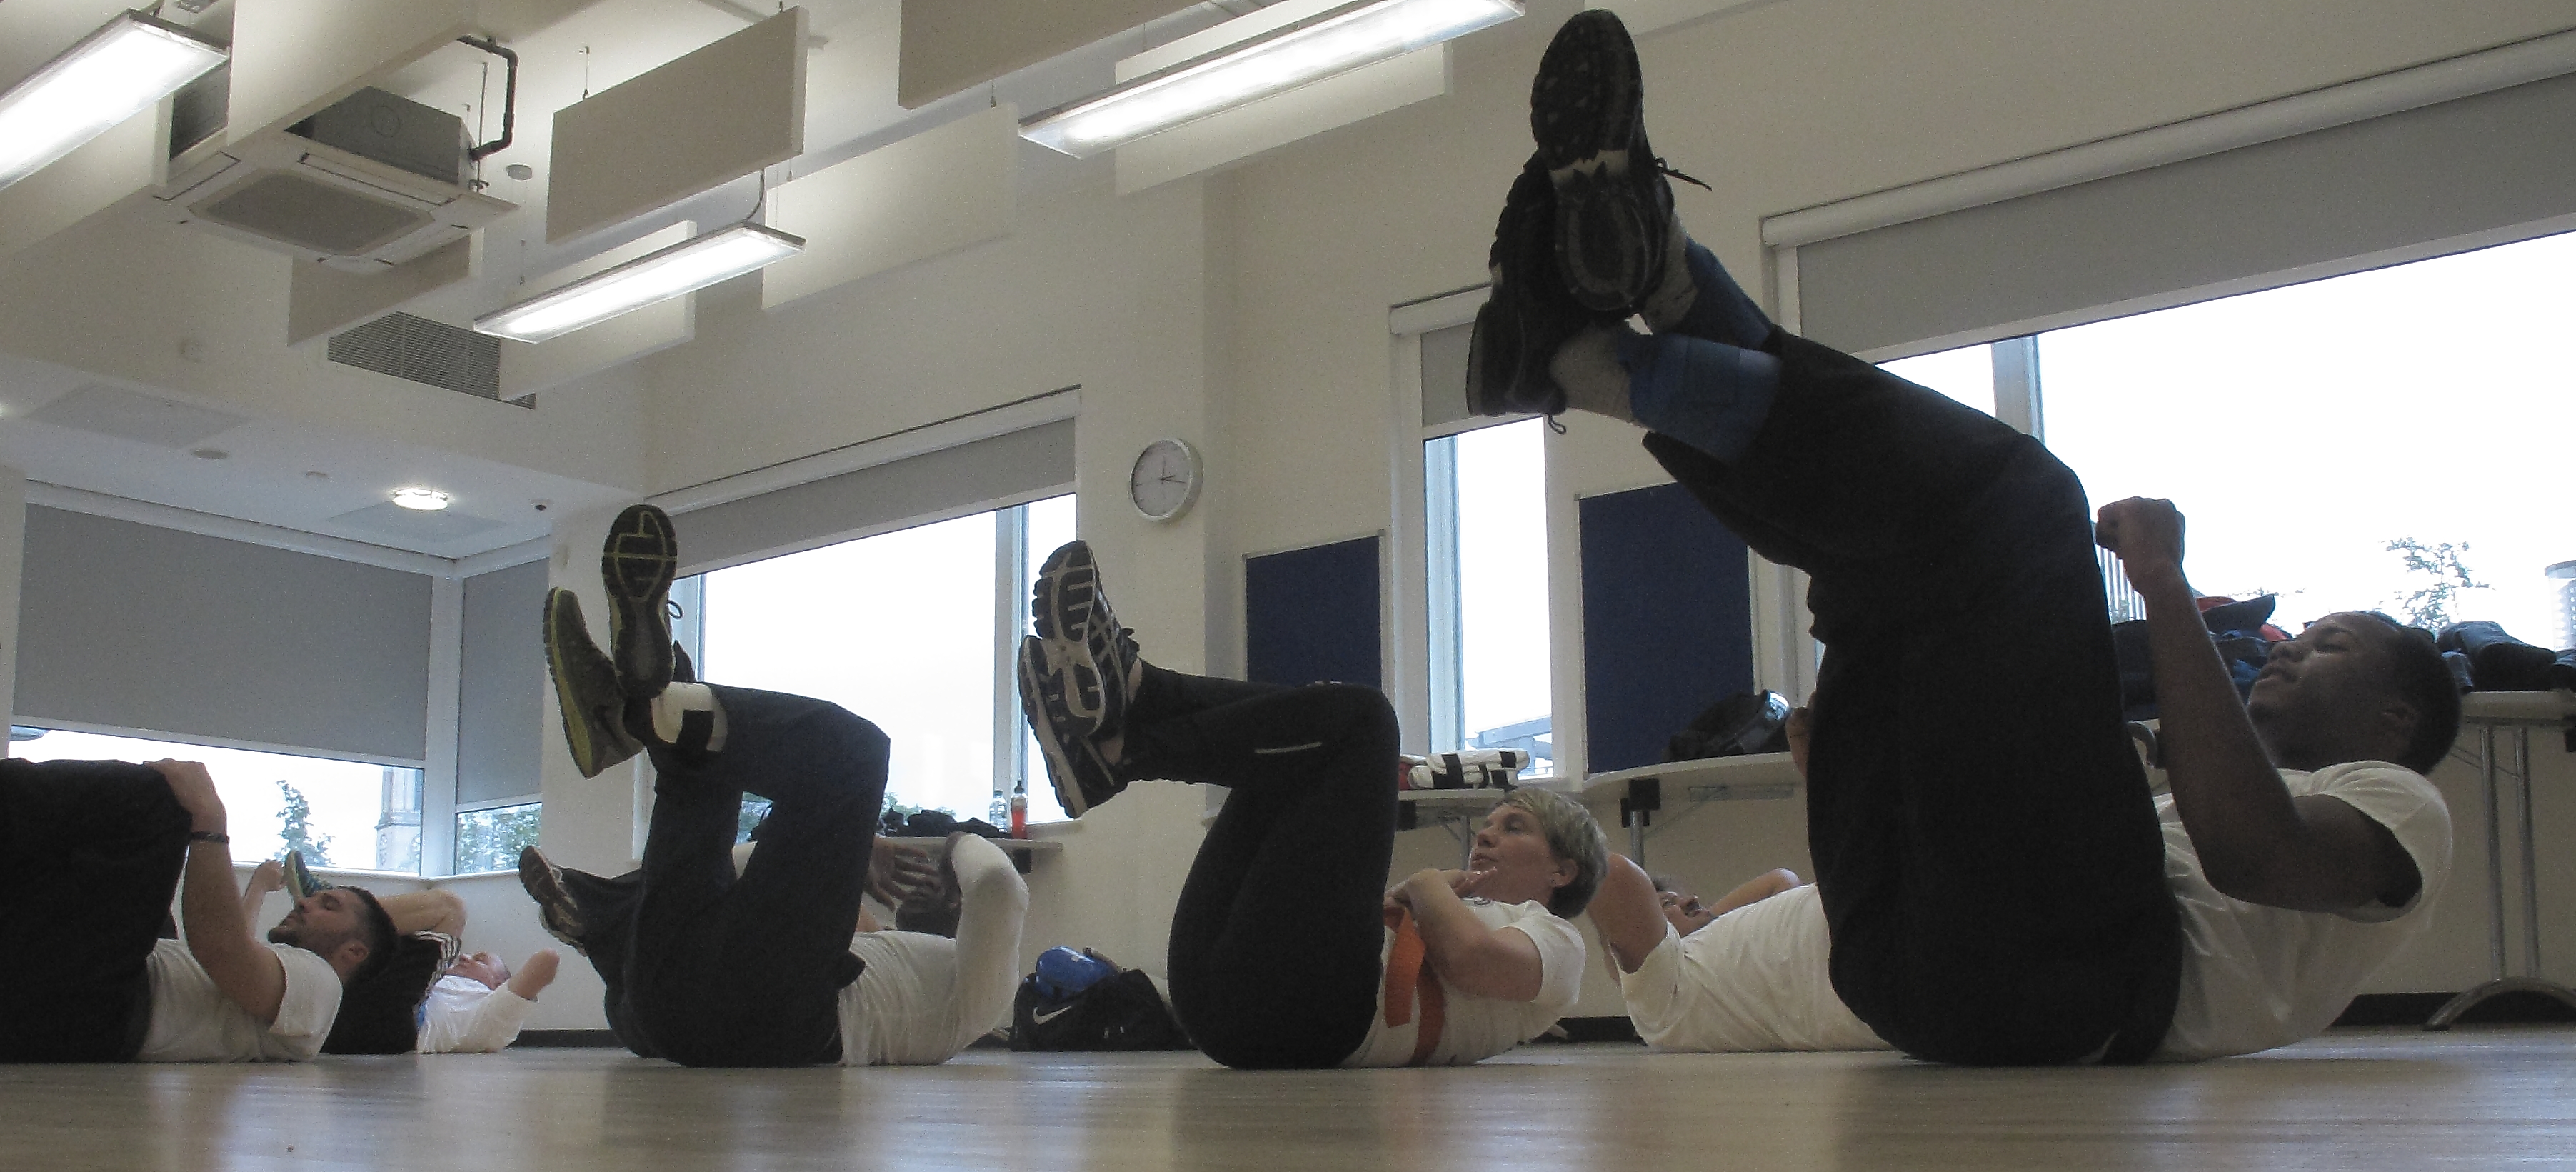 Expert Krav Maga Training classes in London